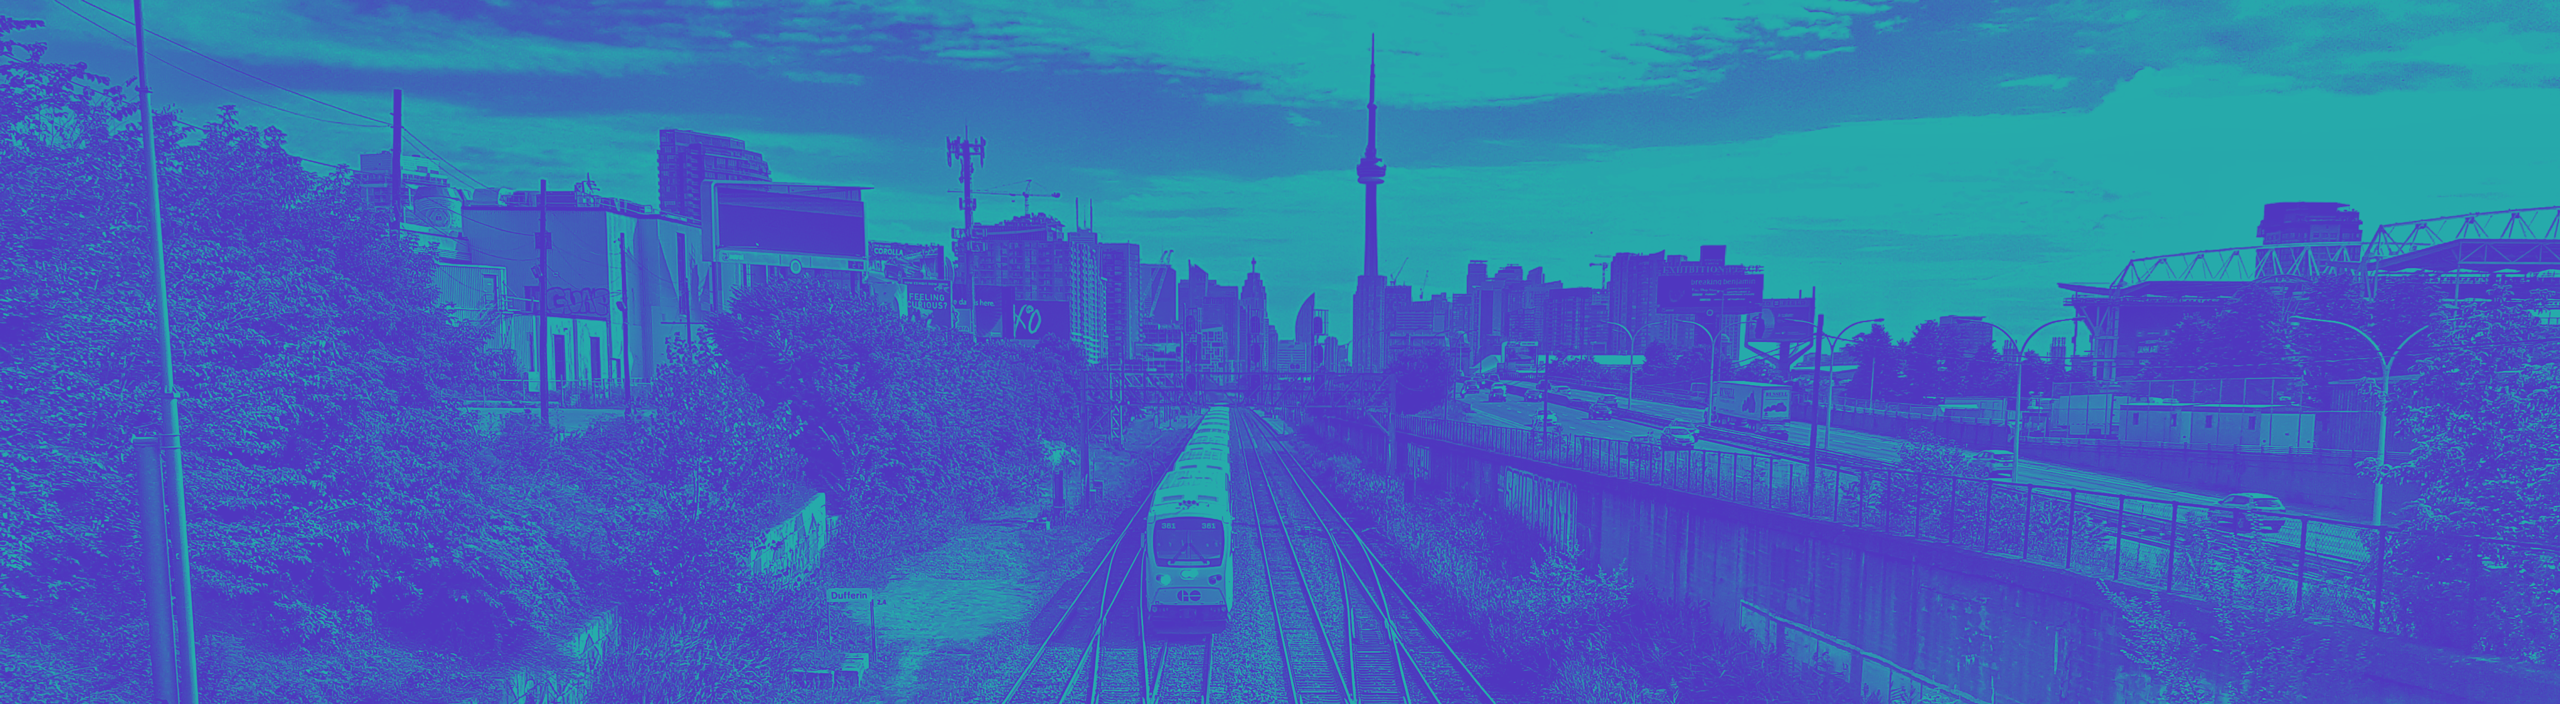 Bytemark Partners with AMP on First-of-its-Kind EMV Payments Solution for Toronto's Metrolinx